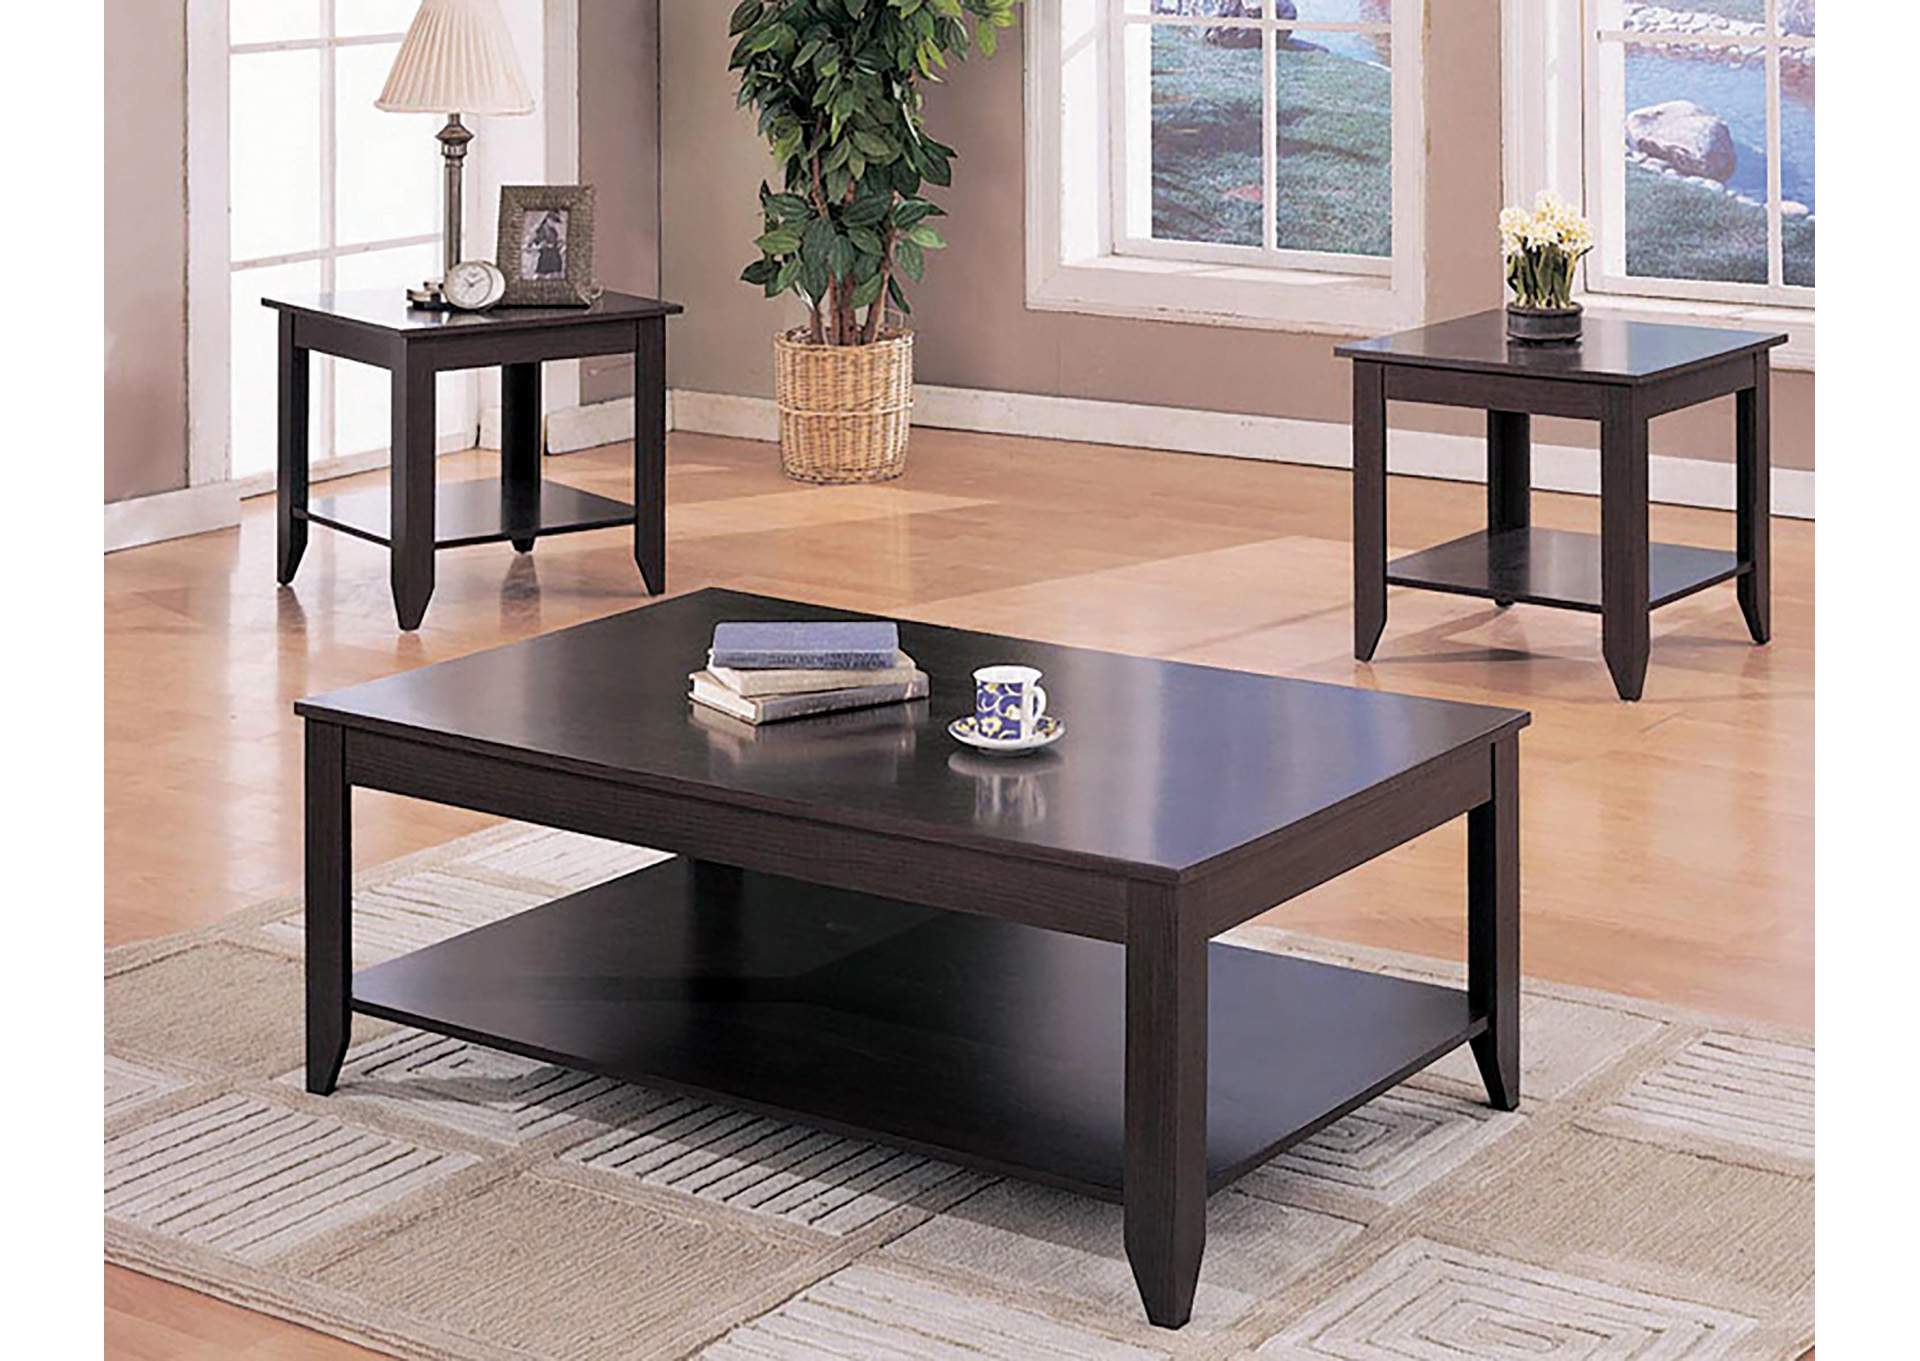 Cappuccino Casual Three-Piece Occasional Table Set,Coaster Furniture